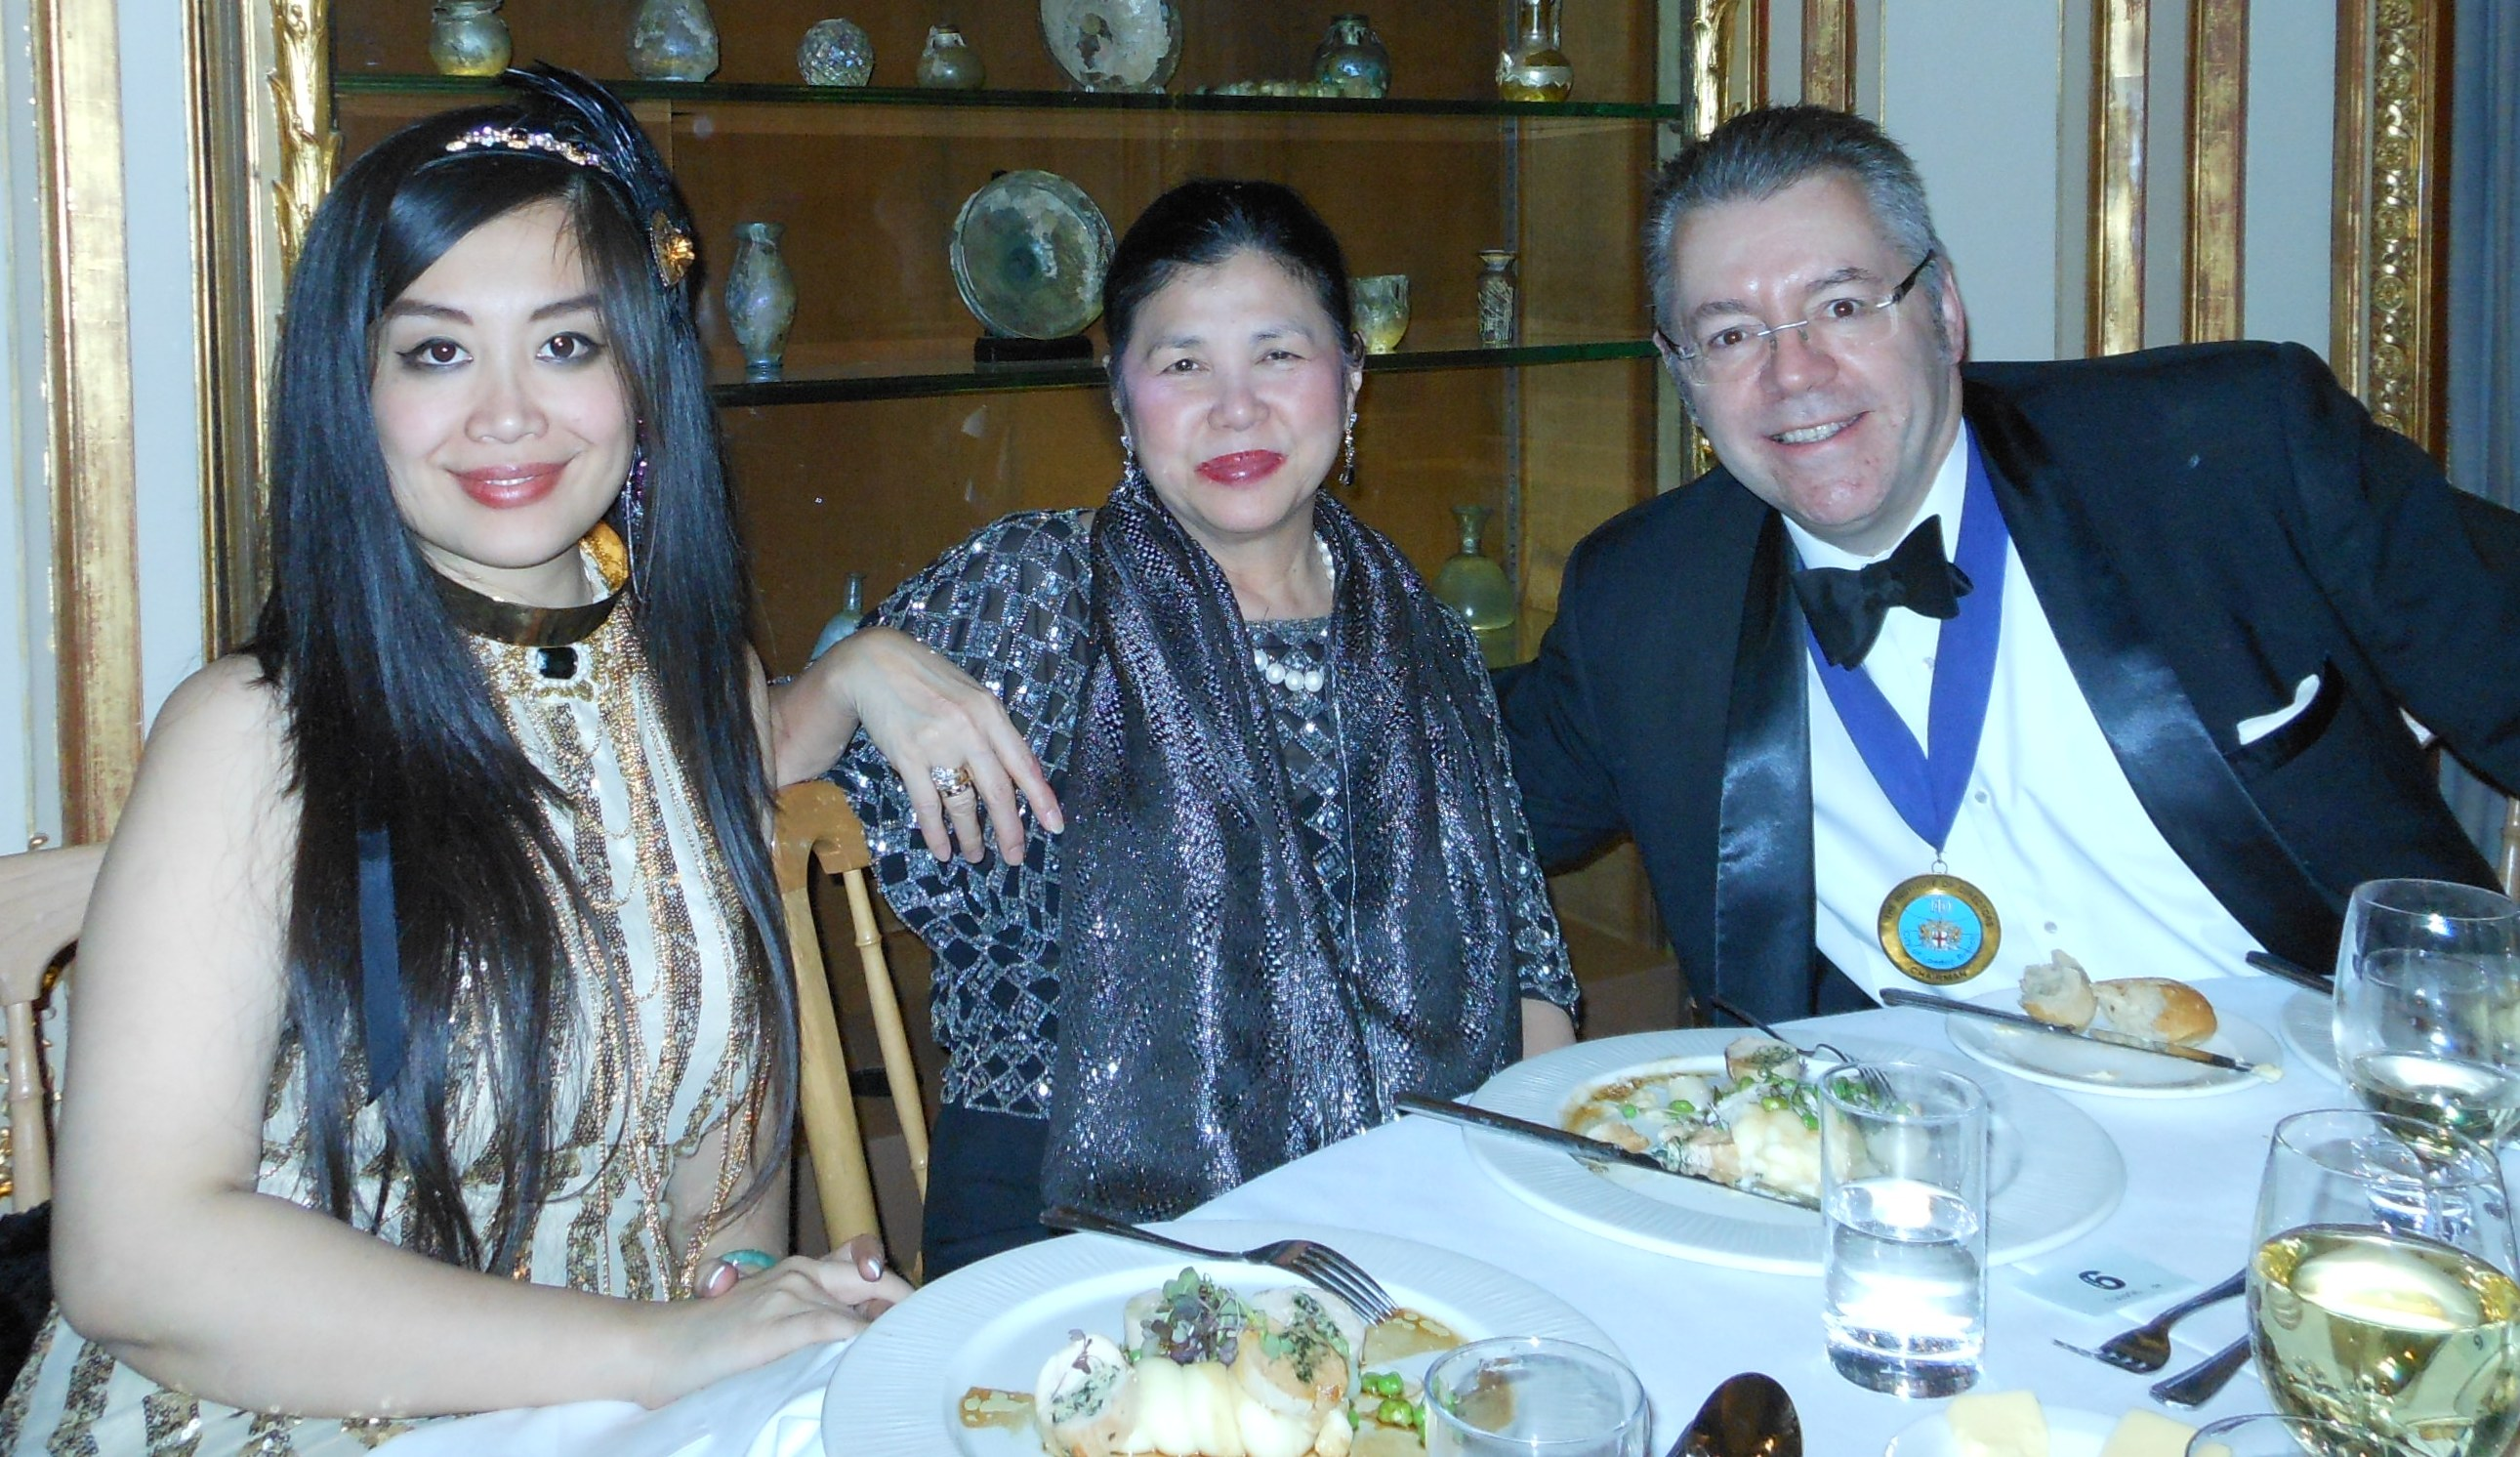 Left to right: Grace Bian, Mei Sim Lai OBE DL and David Stringer-Lamarre